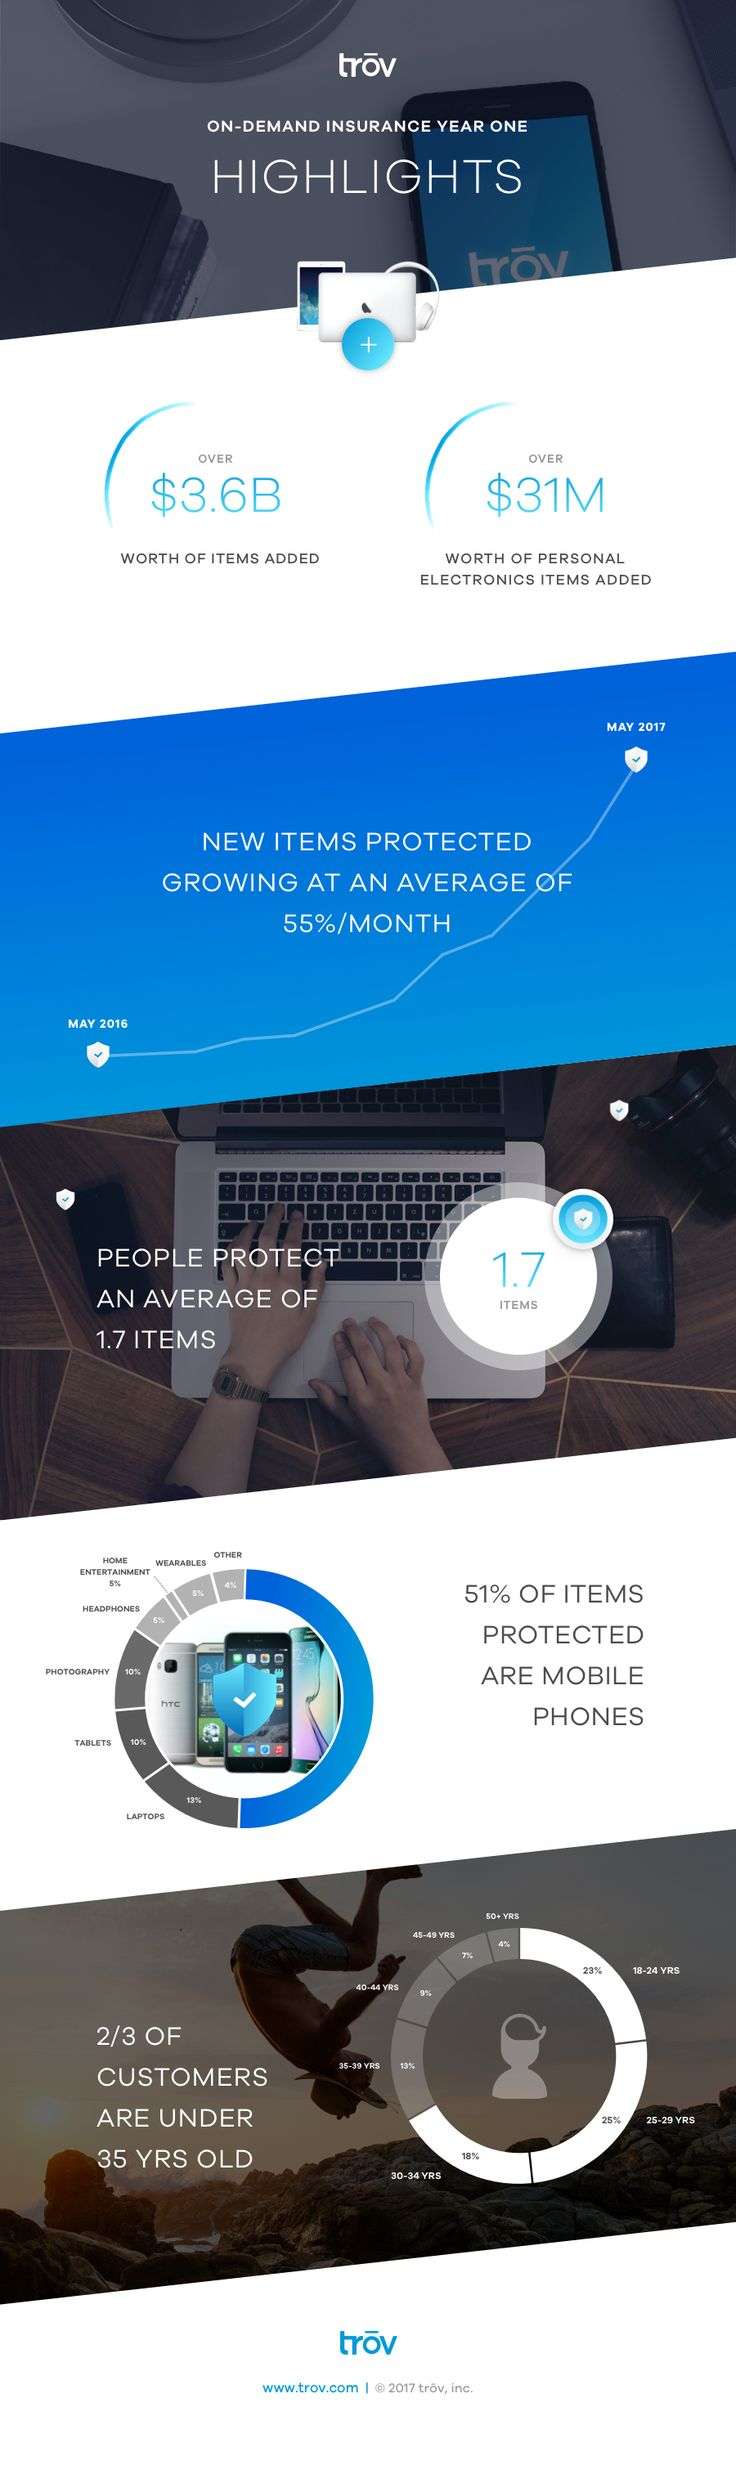 Year One Highlights Infogrpahic for the Rise of On-Demand Insurance with the Trov mobile app #ondemandinsurance #insurance #infographic #design #infographicdesign #mobileapp